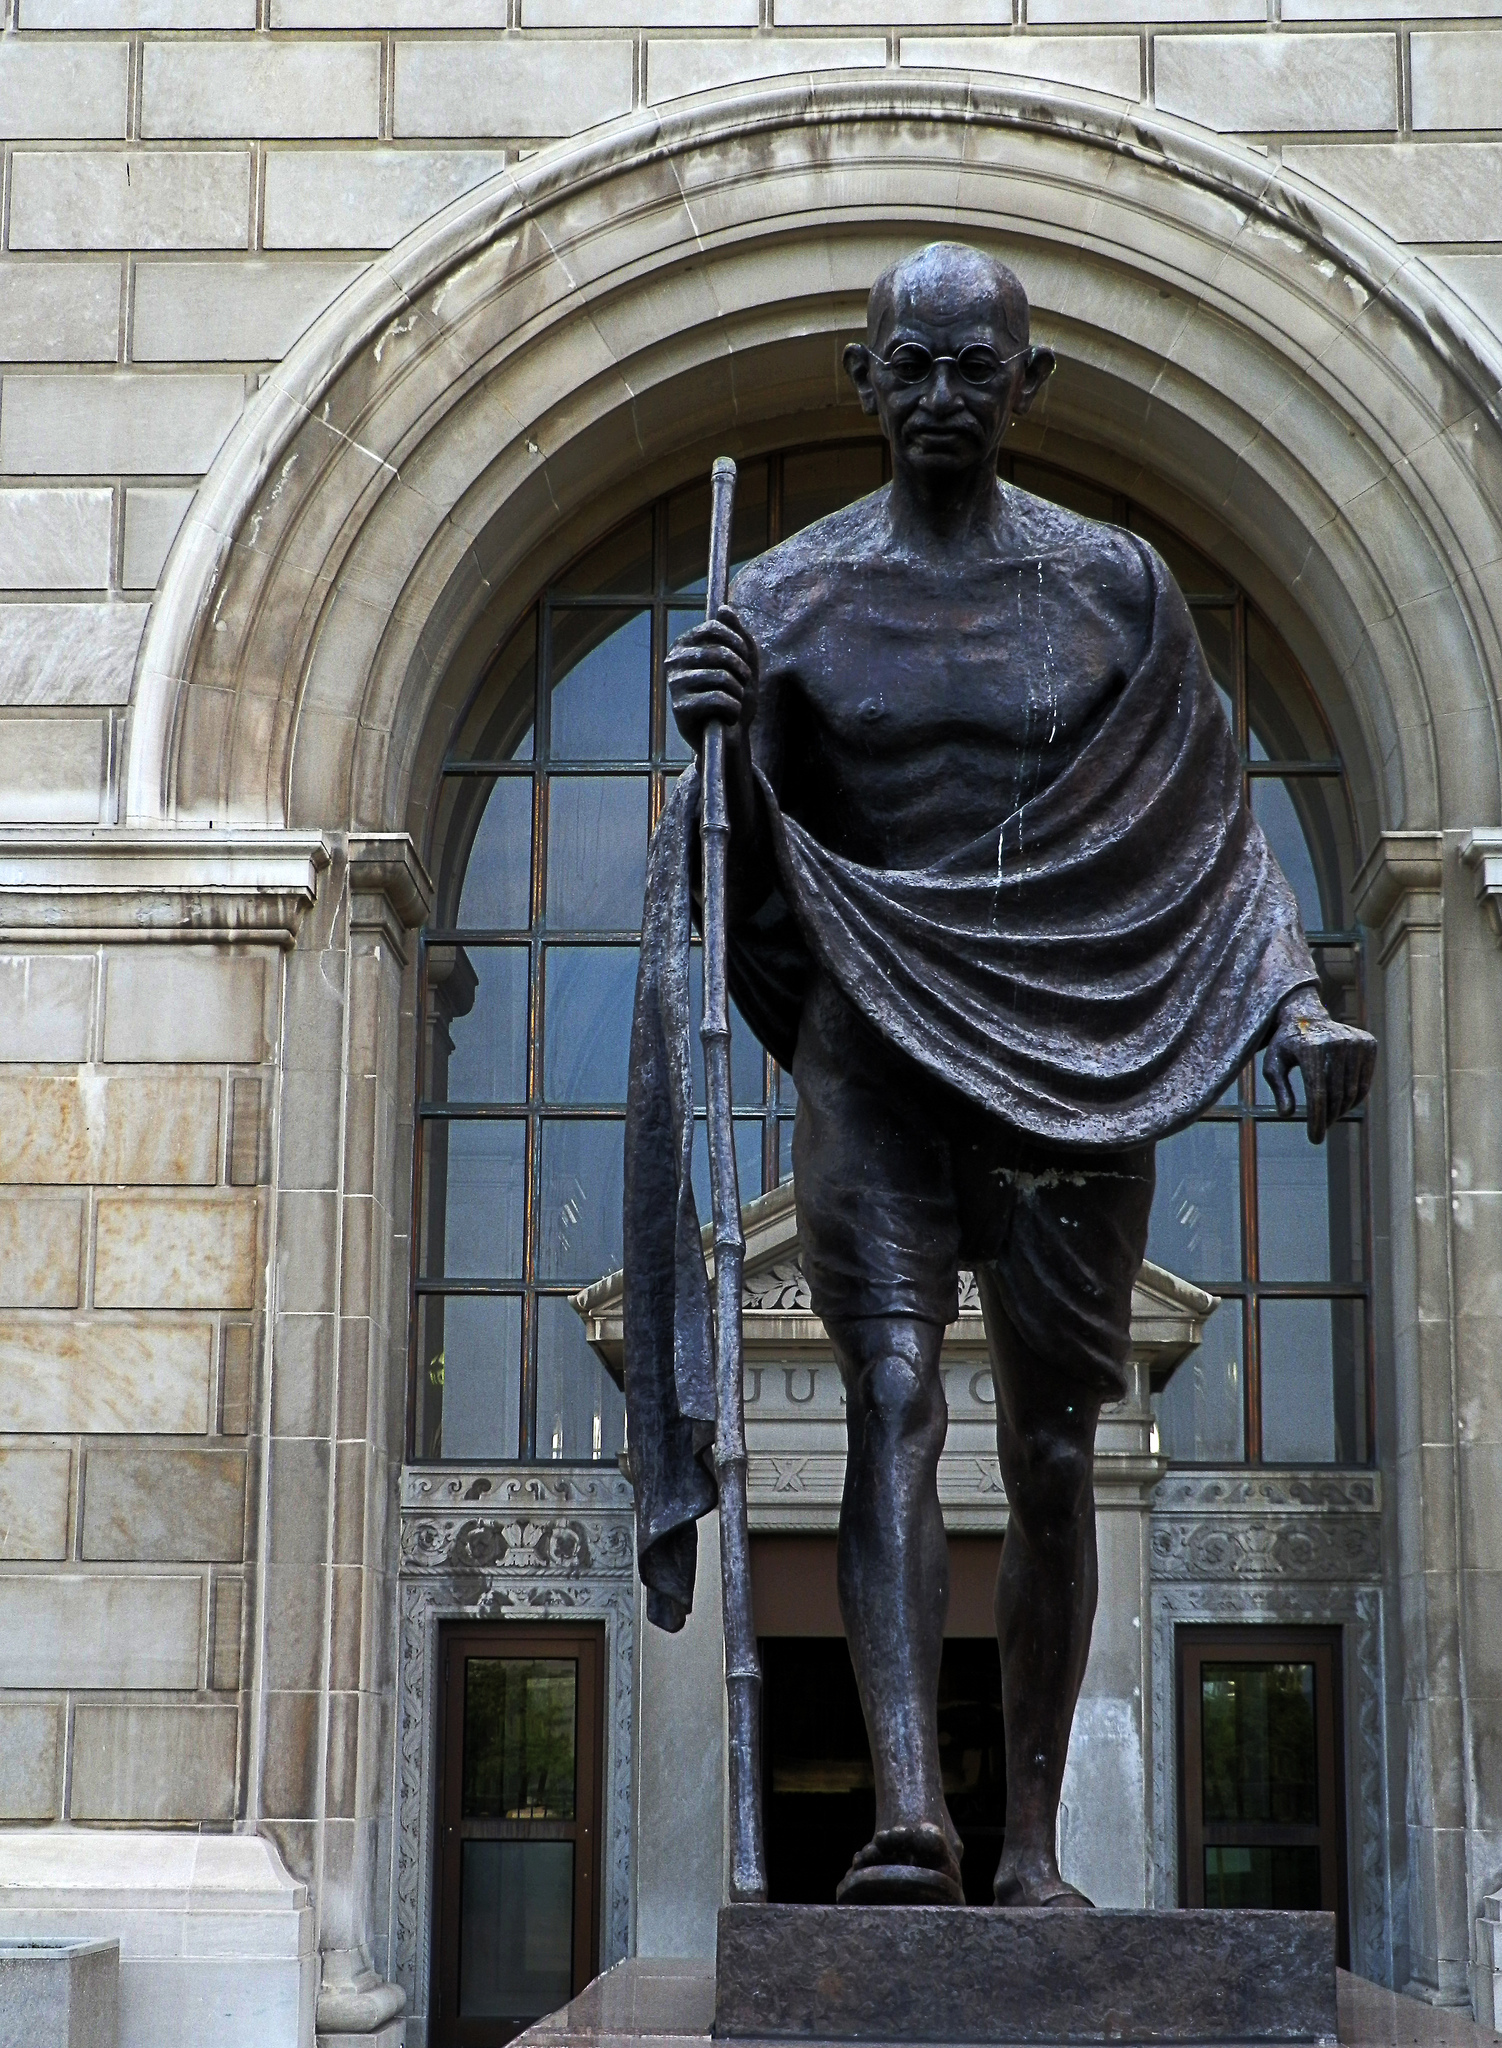 In 2002, artist Gautam Pal's bronze statue of Mahatma Ghandi was unveiled outside the Milwaukee County Courthouse. The memorial was presented by the Wisconsin Coalition of Asian-Indian Organizations.